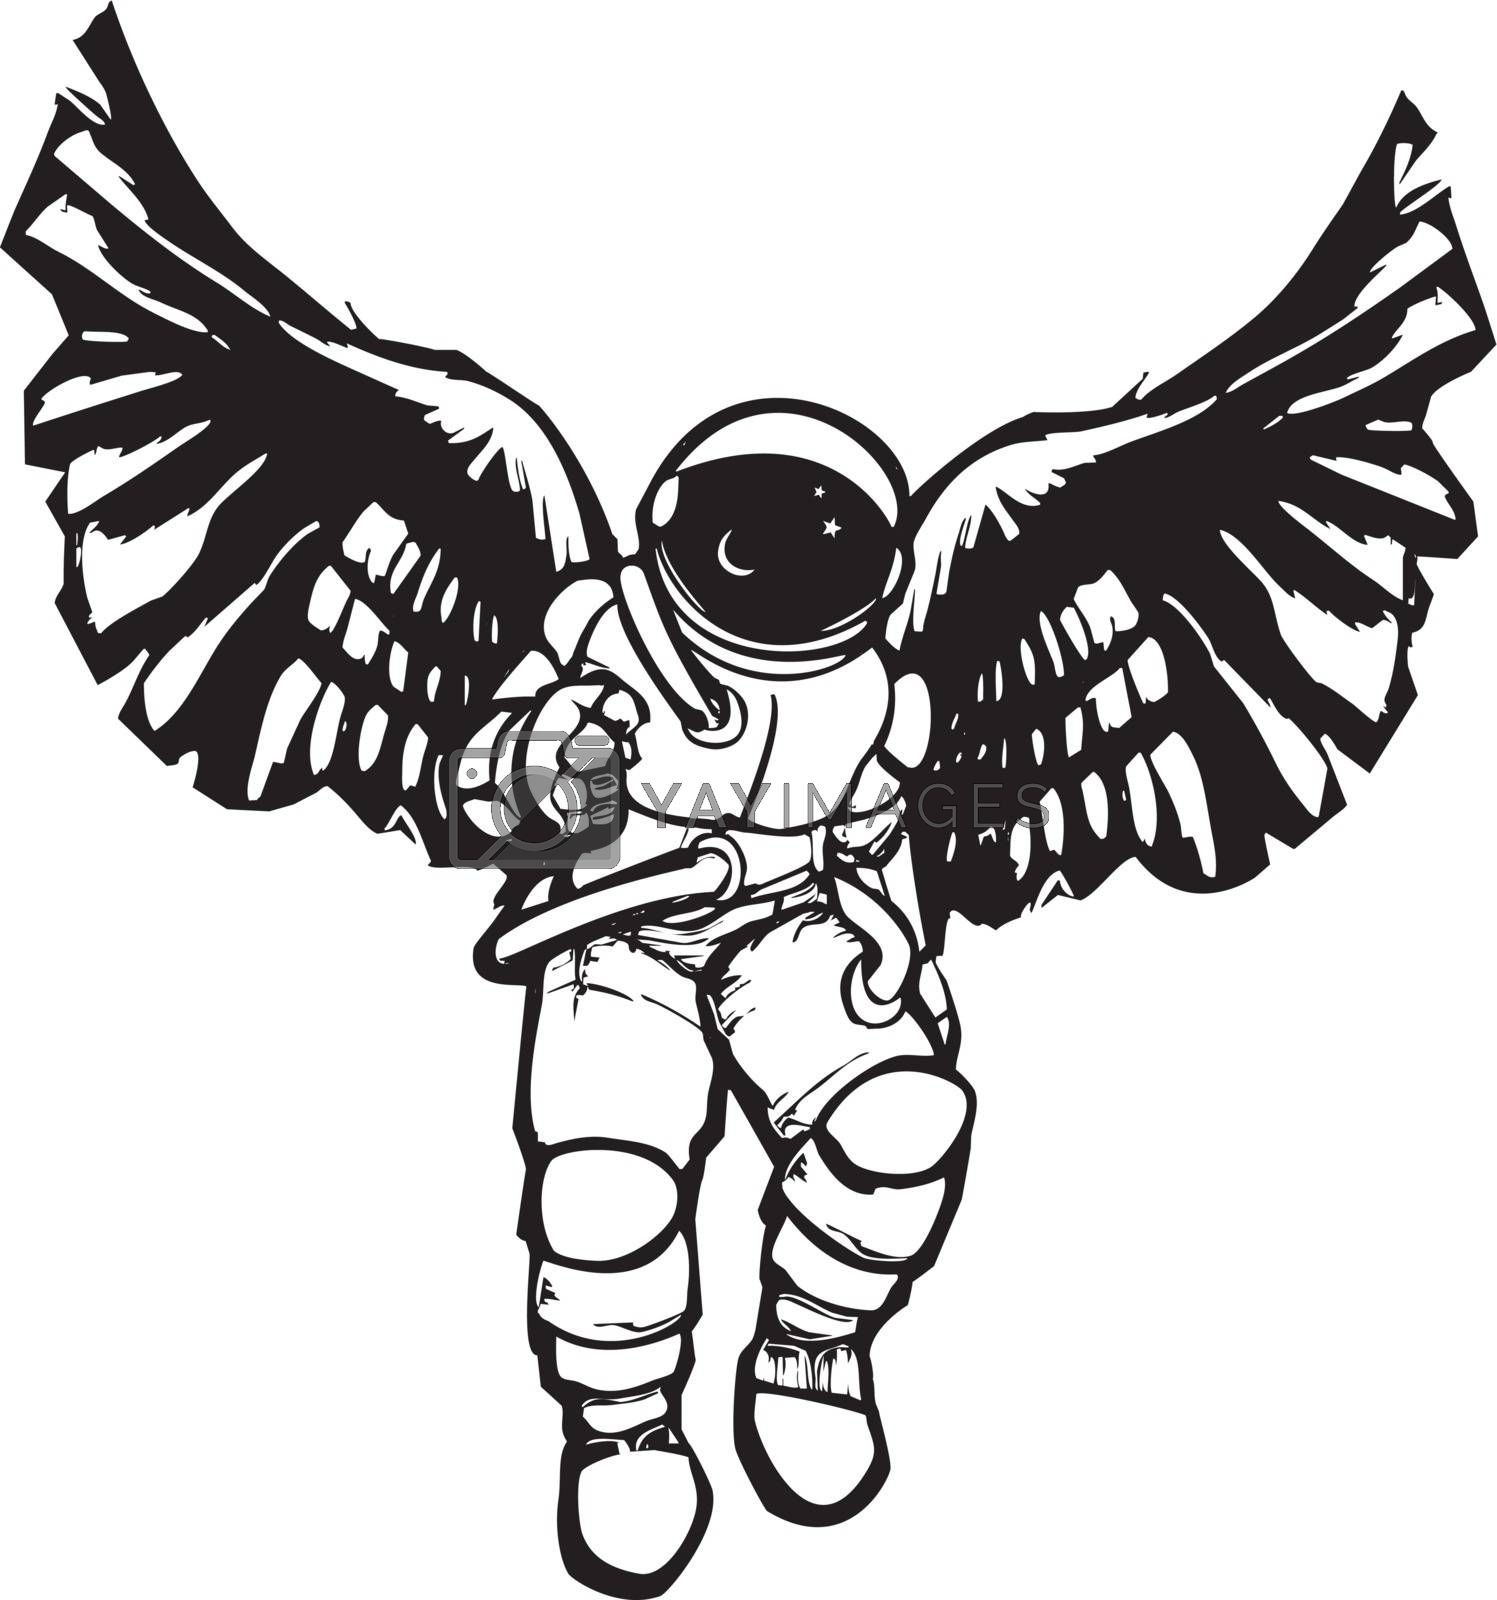 Woodcut style image of an astronaut's space suit with angel wings.